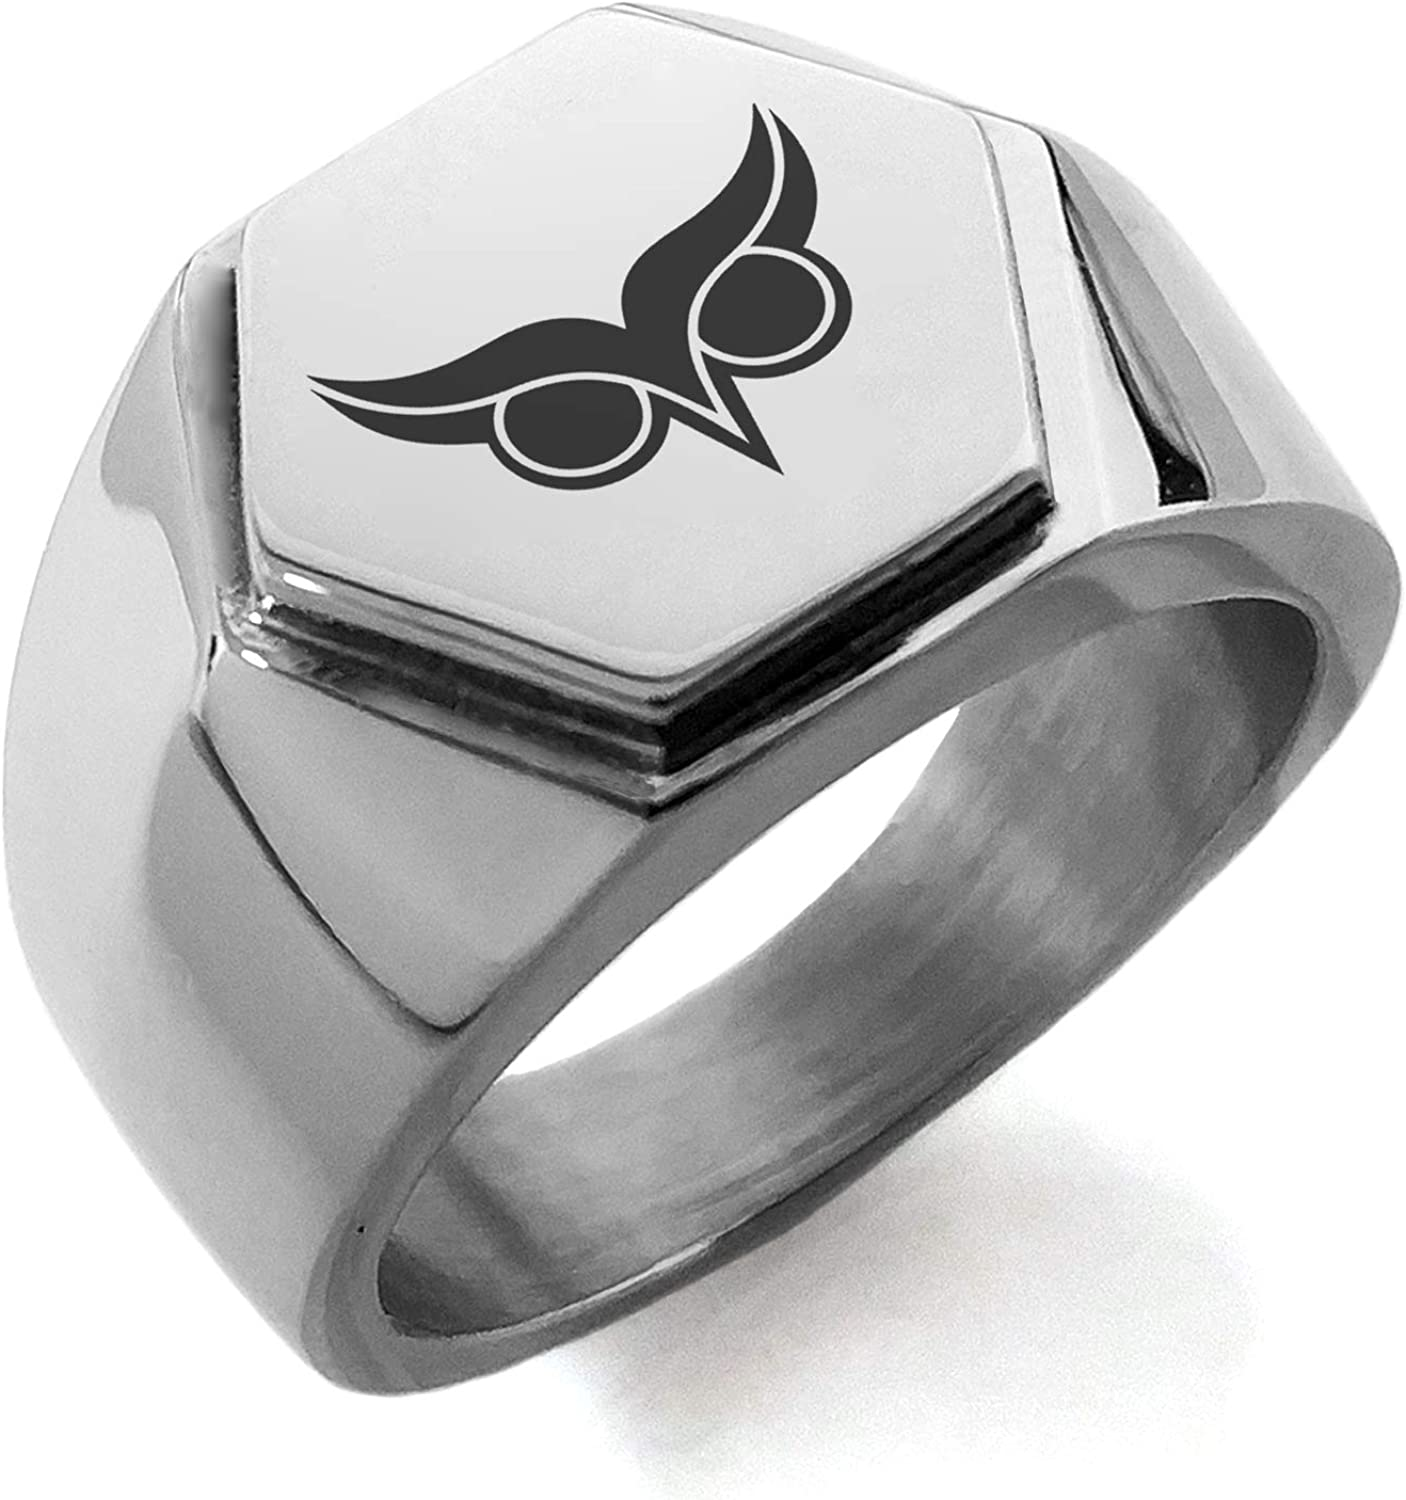 Stainless Steel Athena Greek Goddess of Wisdom Hexagon Crest Flat Top Biker Style Polished Ring